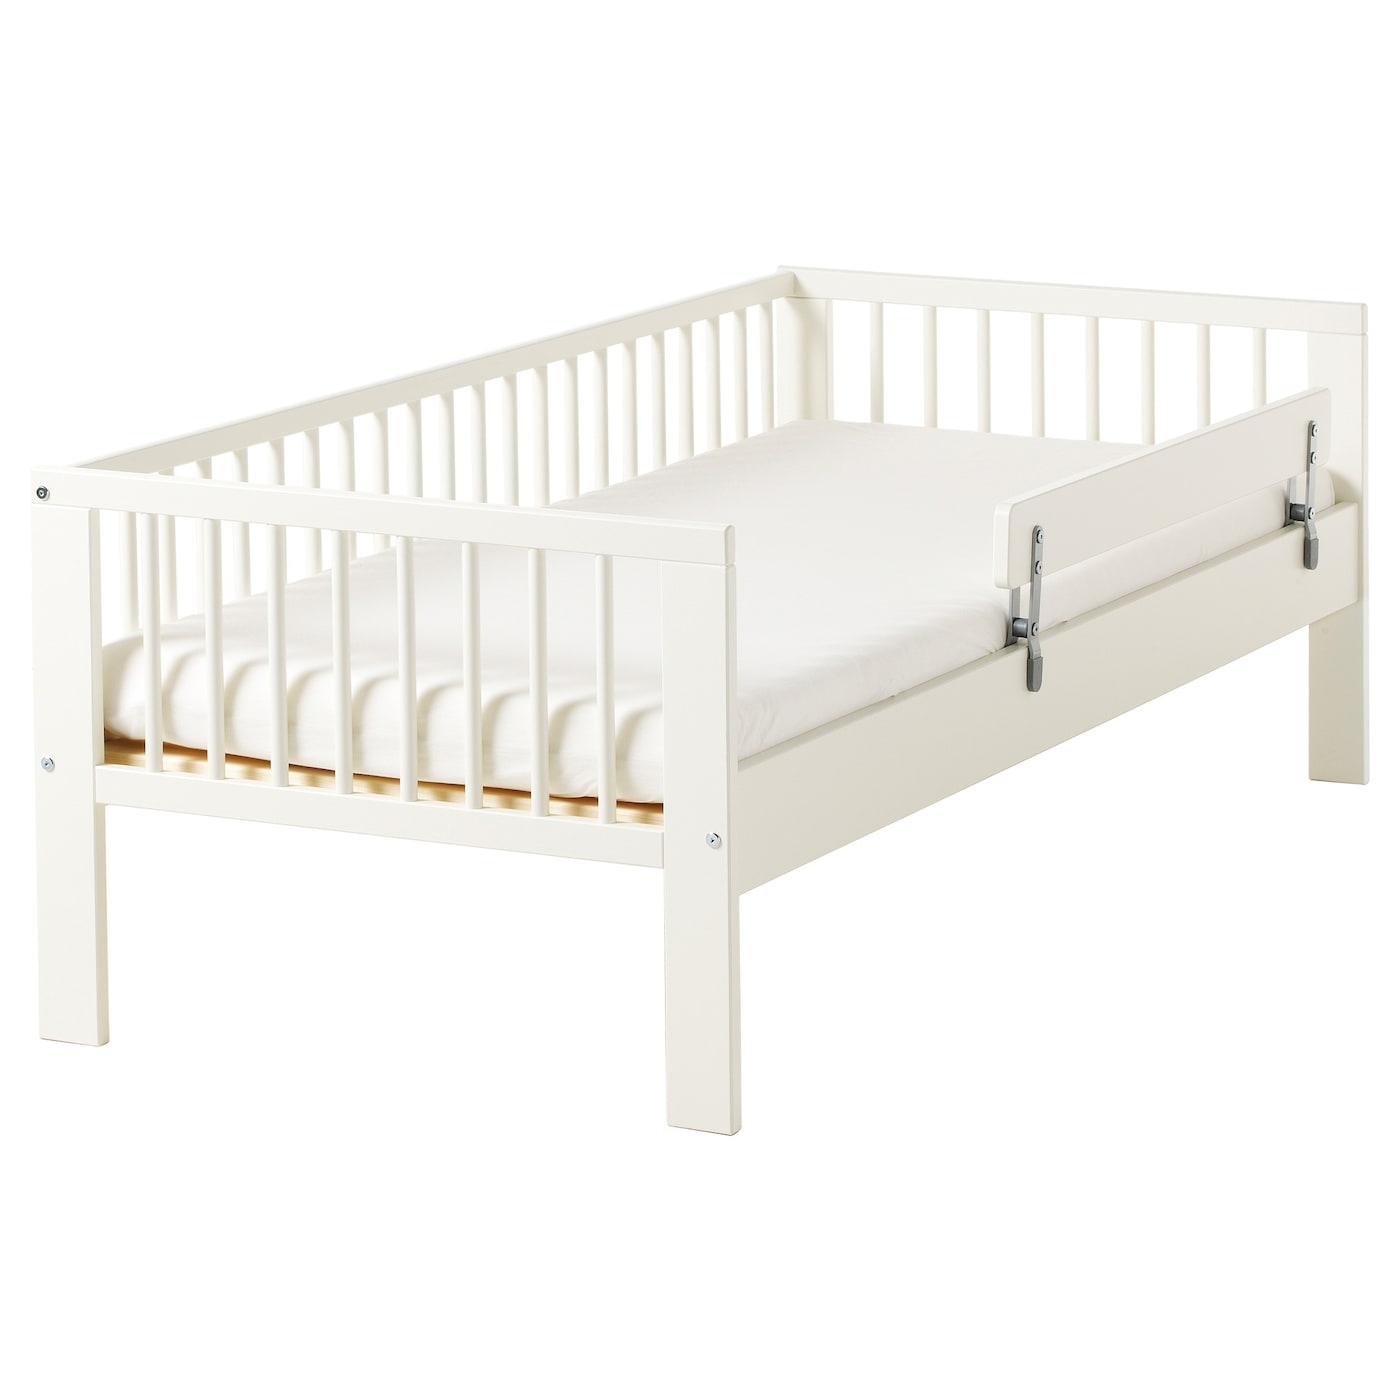 gulliver cadre lit sommier lattes blanc 70x160 cm ikea. Black Bedroom Furniture Sets. Home Design Ideas